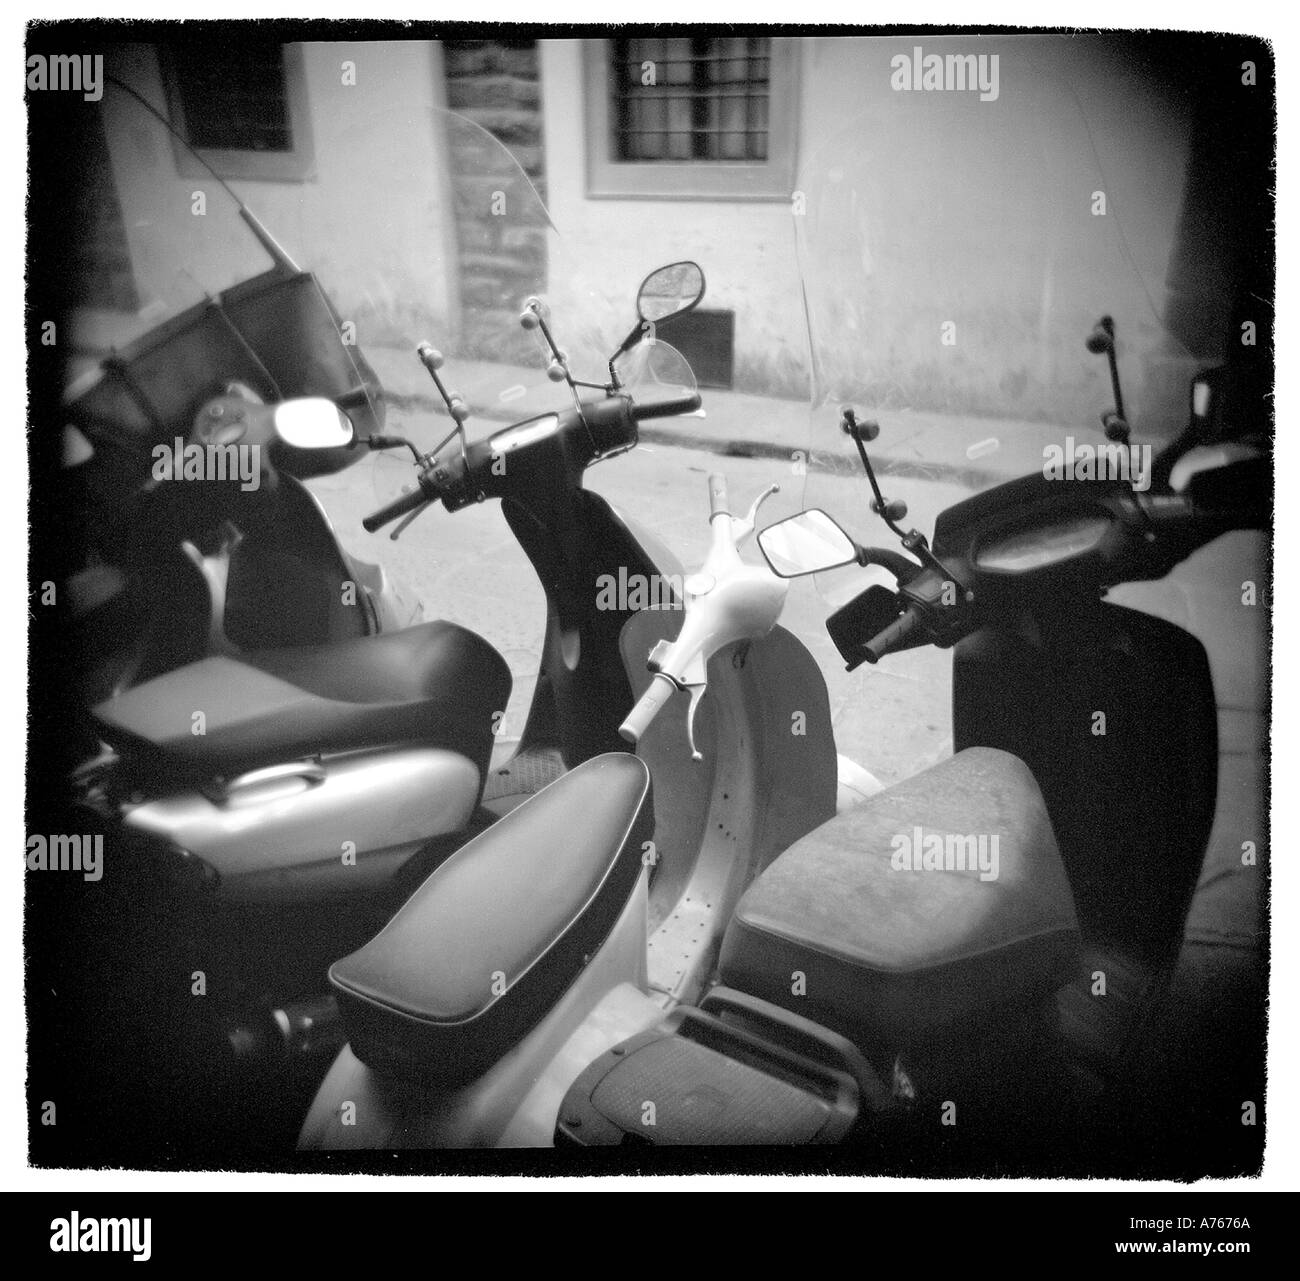 Scooters en Florence Italie Photo Stock